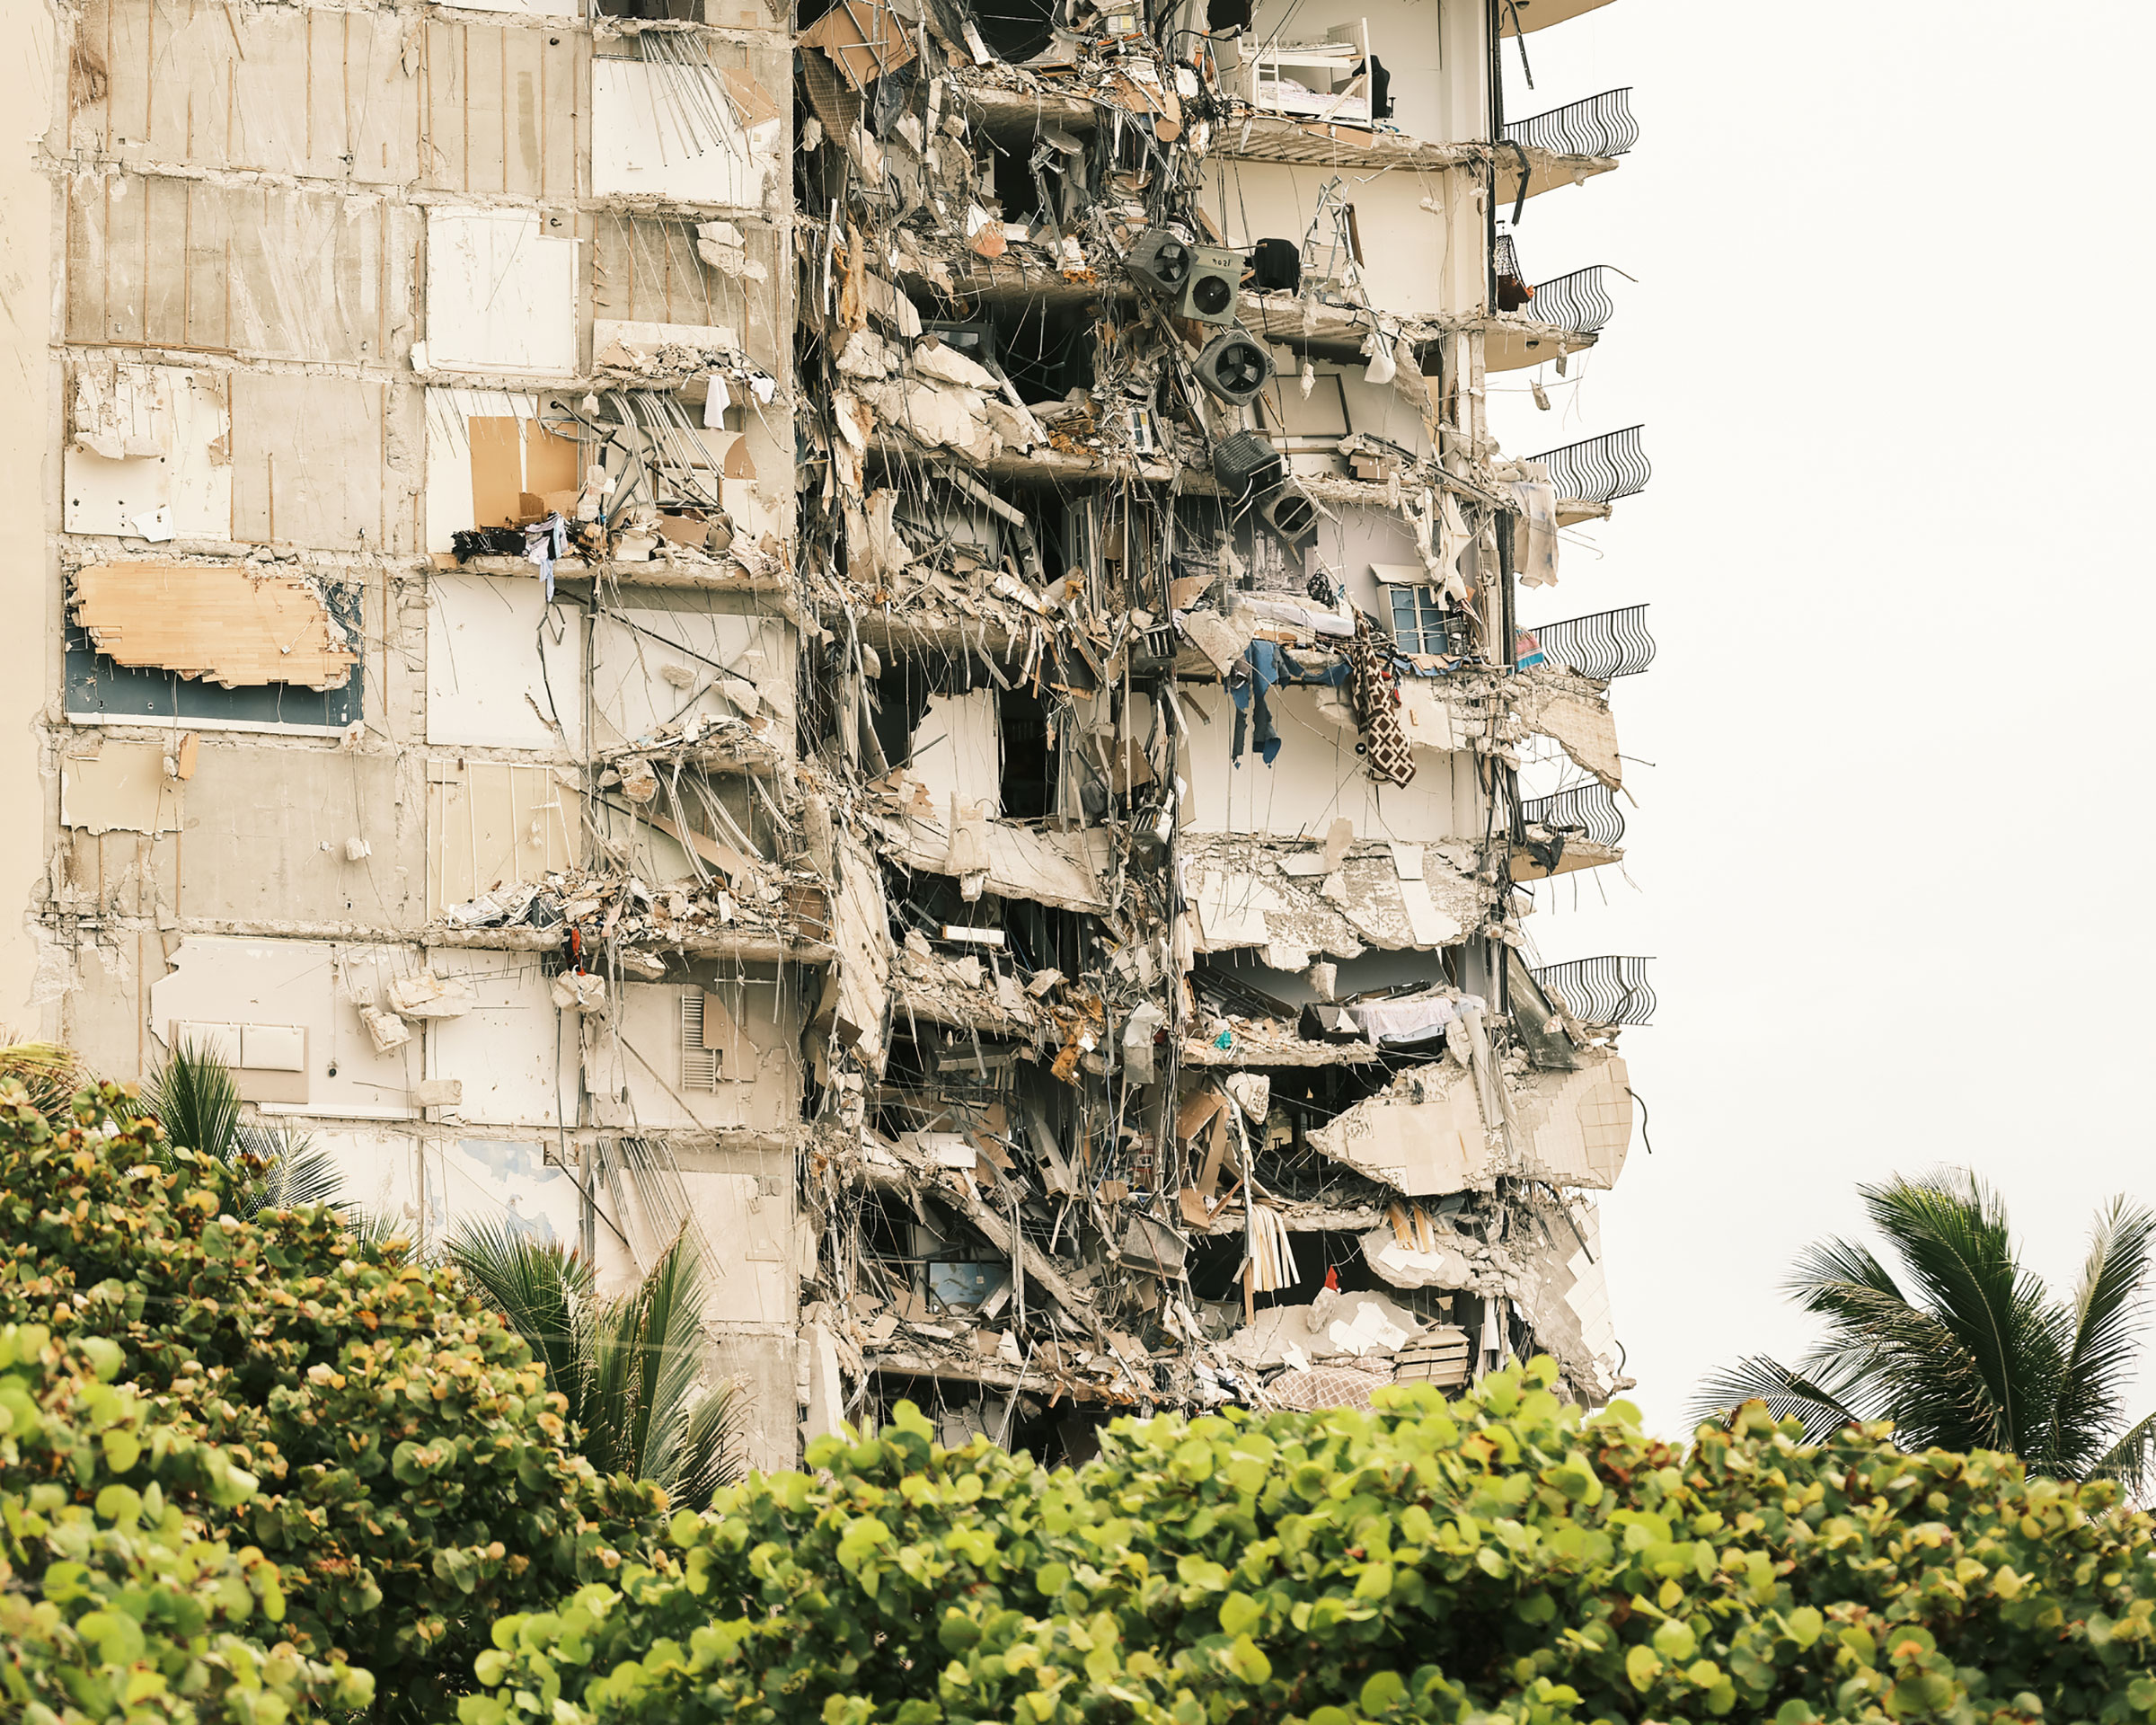 The interior of the Champlain Towers South building is exposed after the residential building partially collapsed in Surfside, Fla. on June 24, 2021.